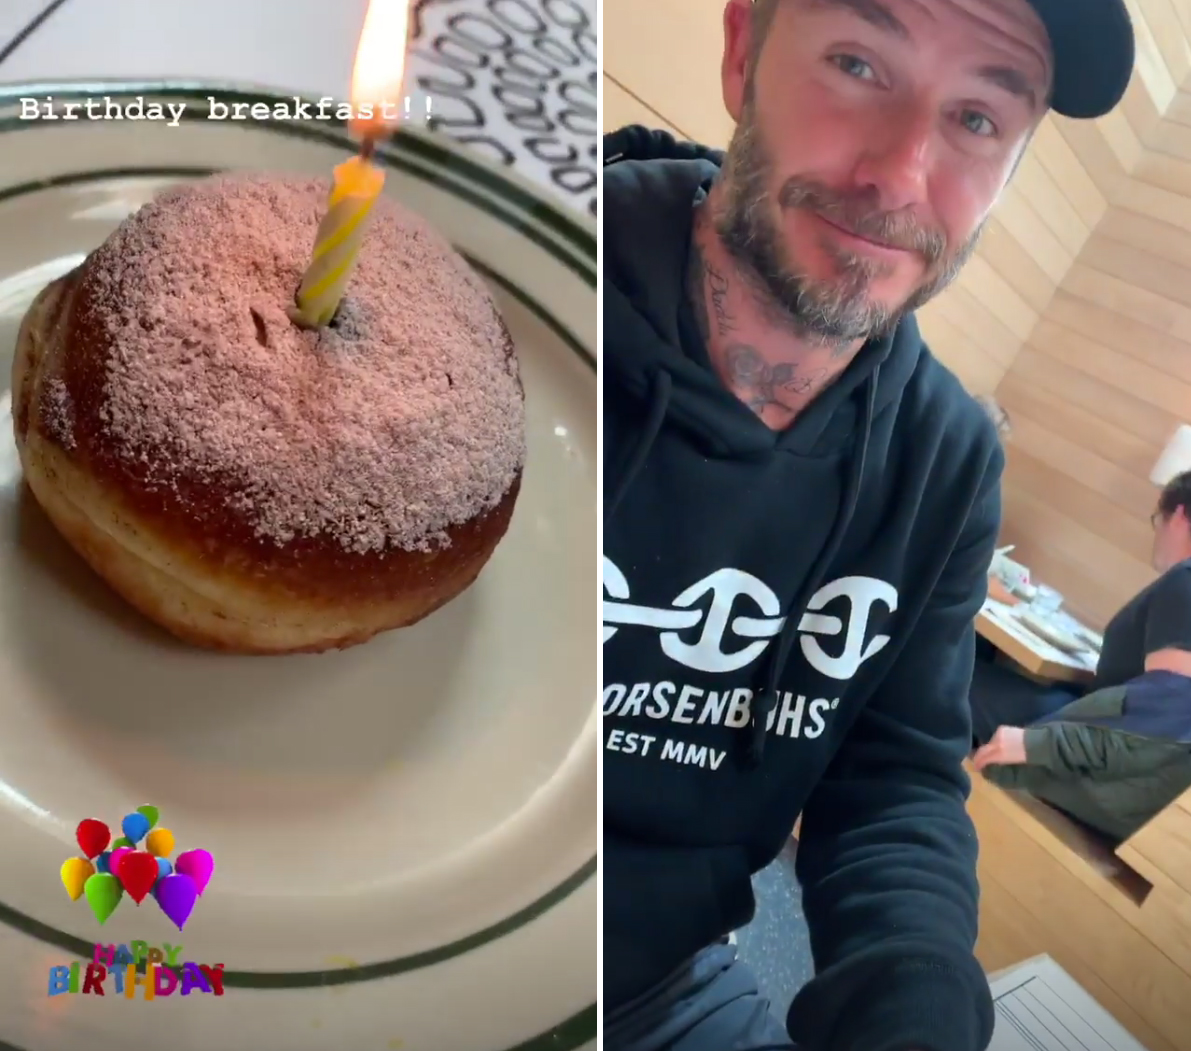 Victoria-Beckham-birthday-David-Beckham - The musician's birthday doughnut held one single candle for her to blow out after the singing was through.